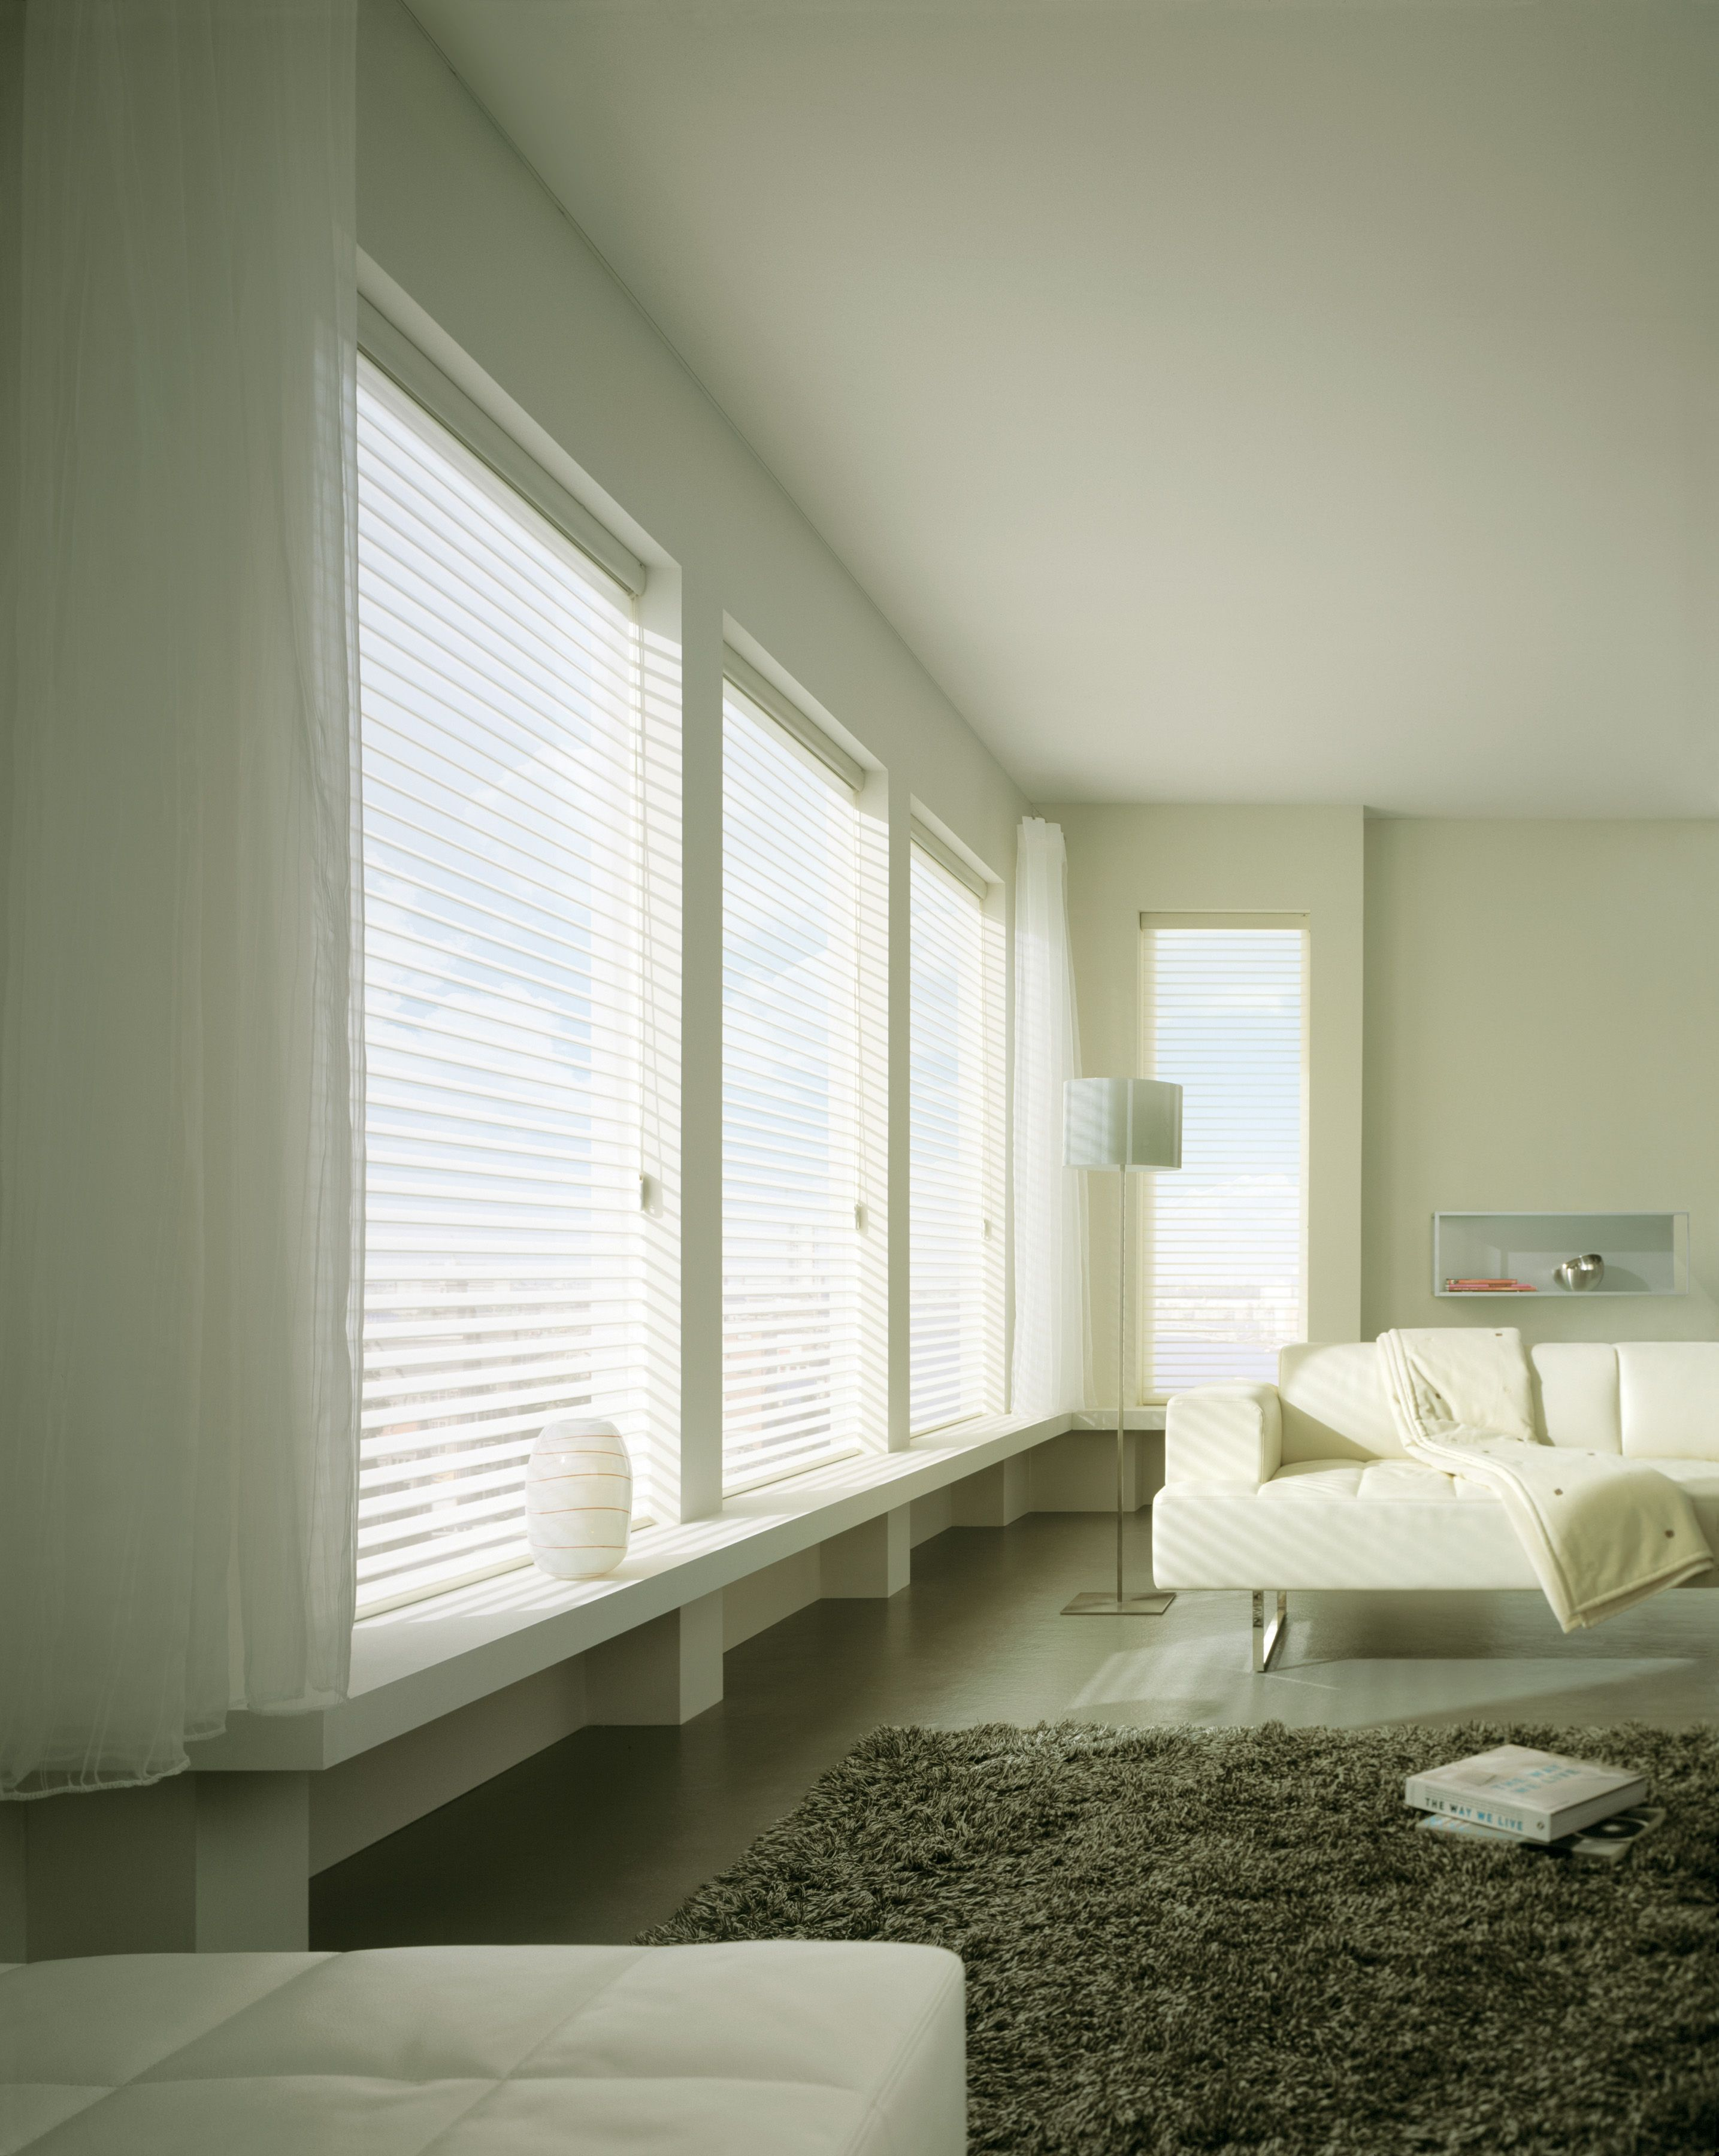 you the livingroom light shadings silhouette transform finishing any product offer ability decorating inspiration unlike blinds touches treatment into alsilhouette to tips window ultraglide other